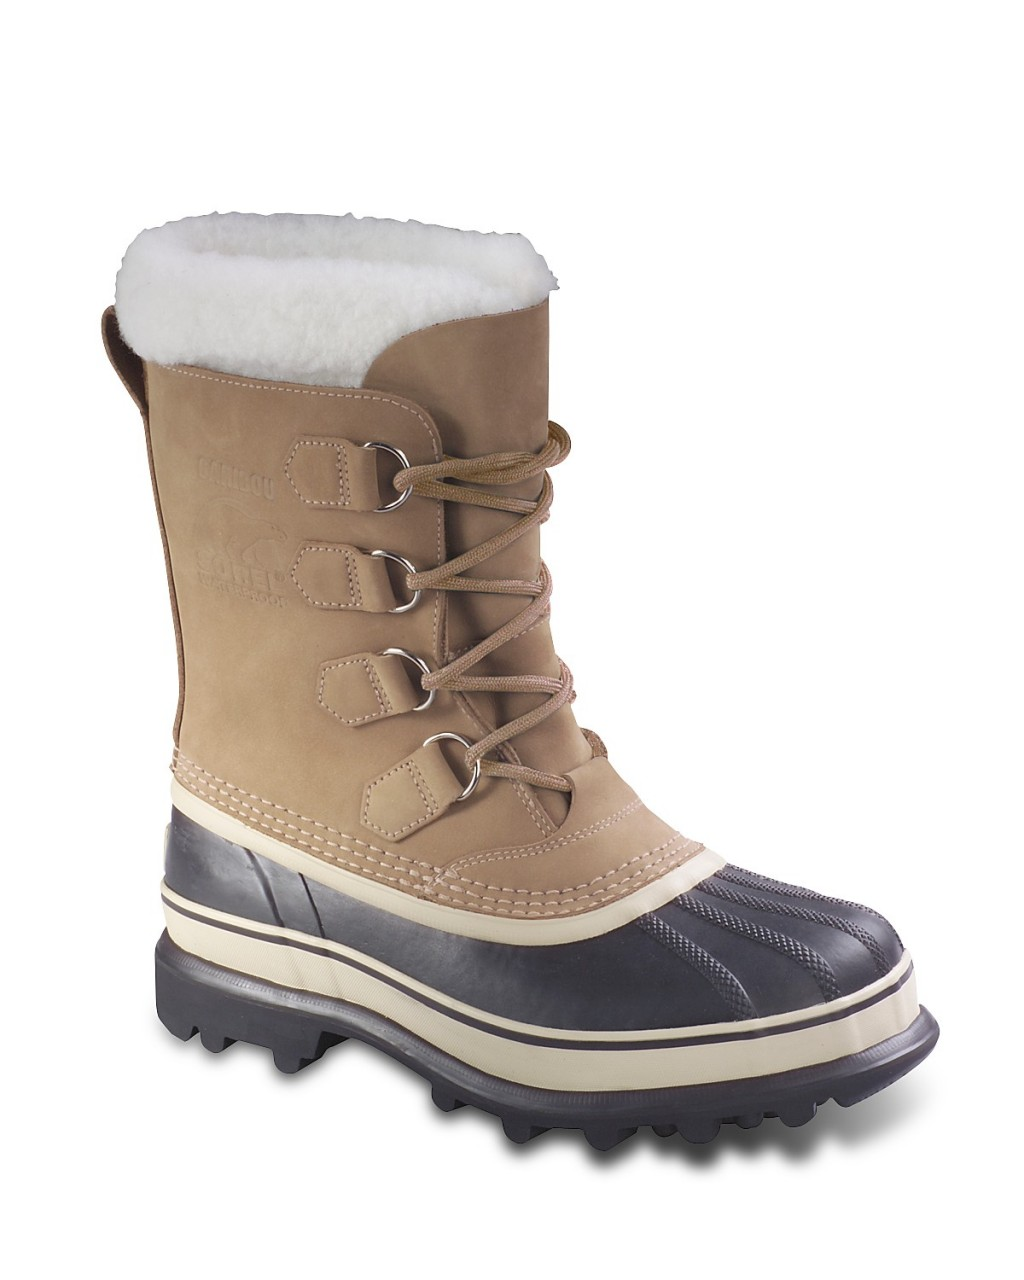 Shoes , Breathtaking Sorel Snow Boots For Women Image Gallery : Grey  Sorel Snow Boot Photo Collection